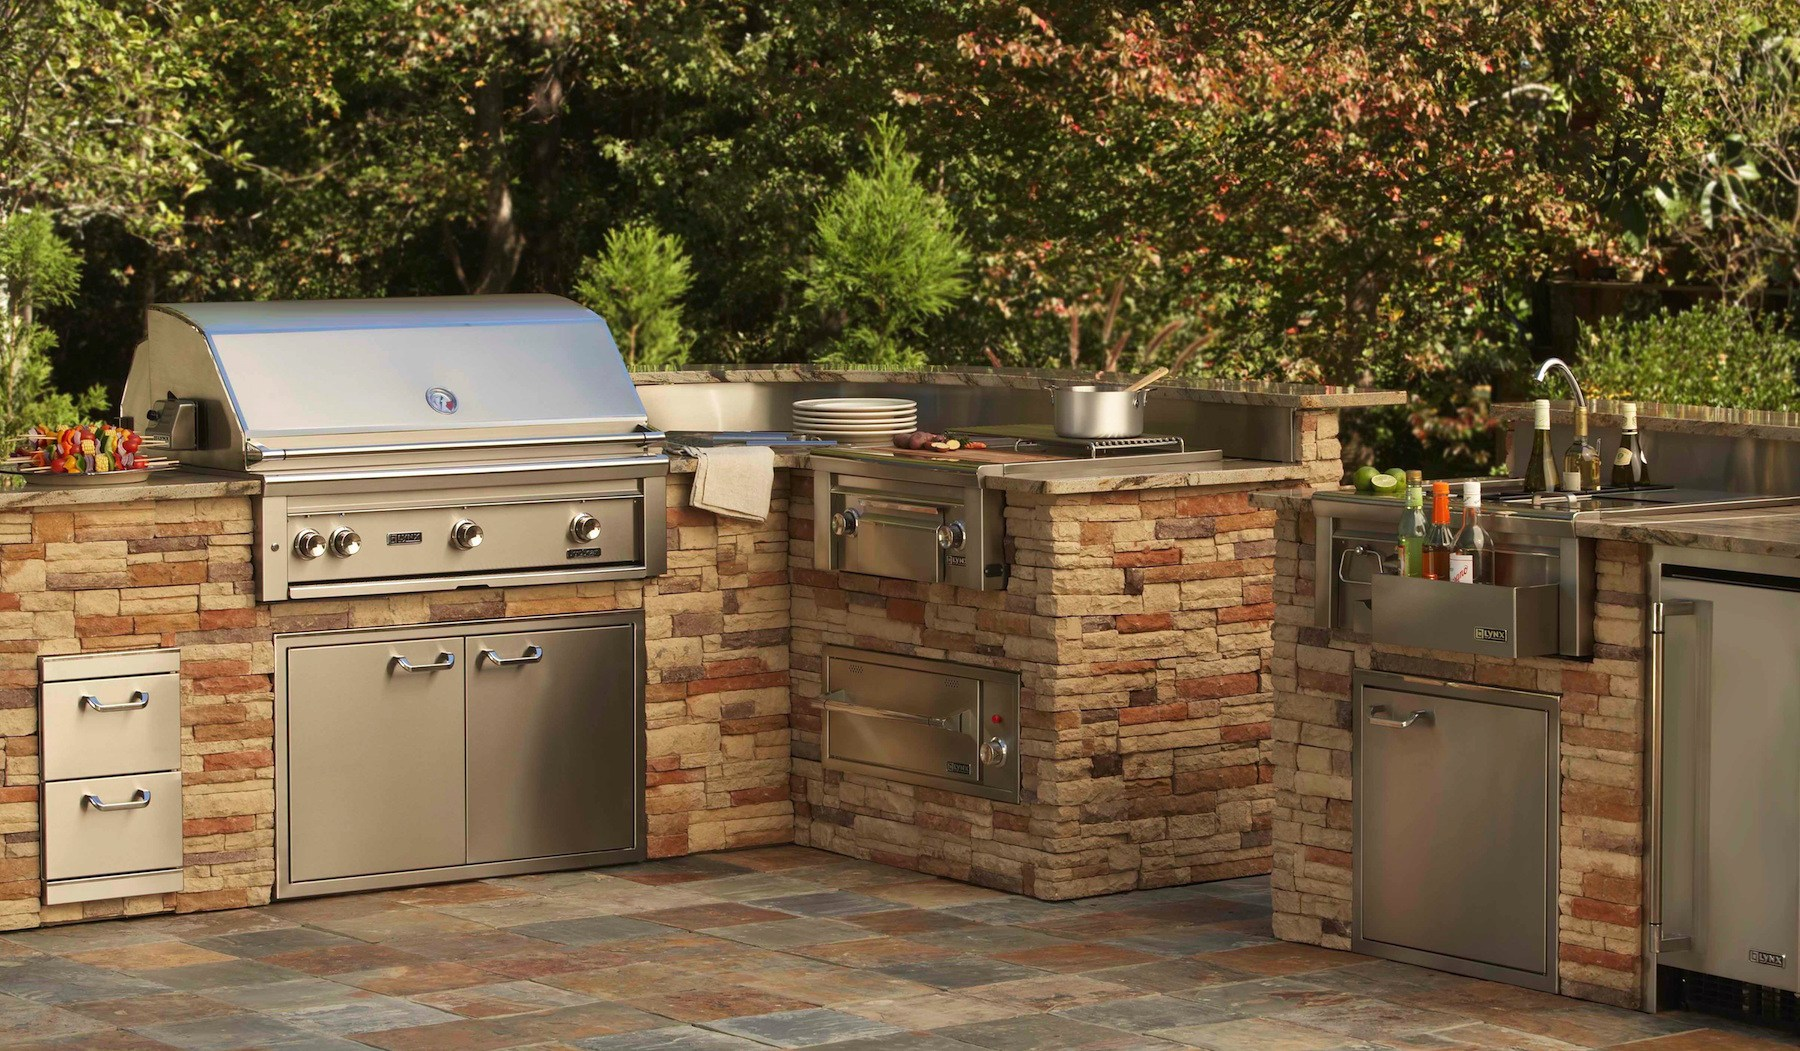 Lynx-Professional-Built-in-Barbecue-Grills-Outdoor-Kitchens-of-Southwest-Florida